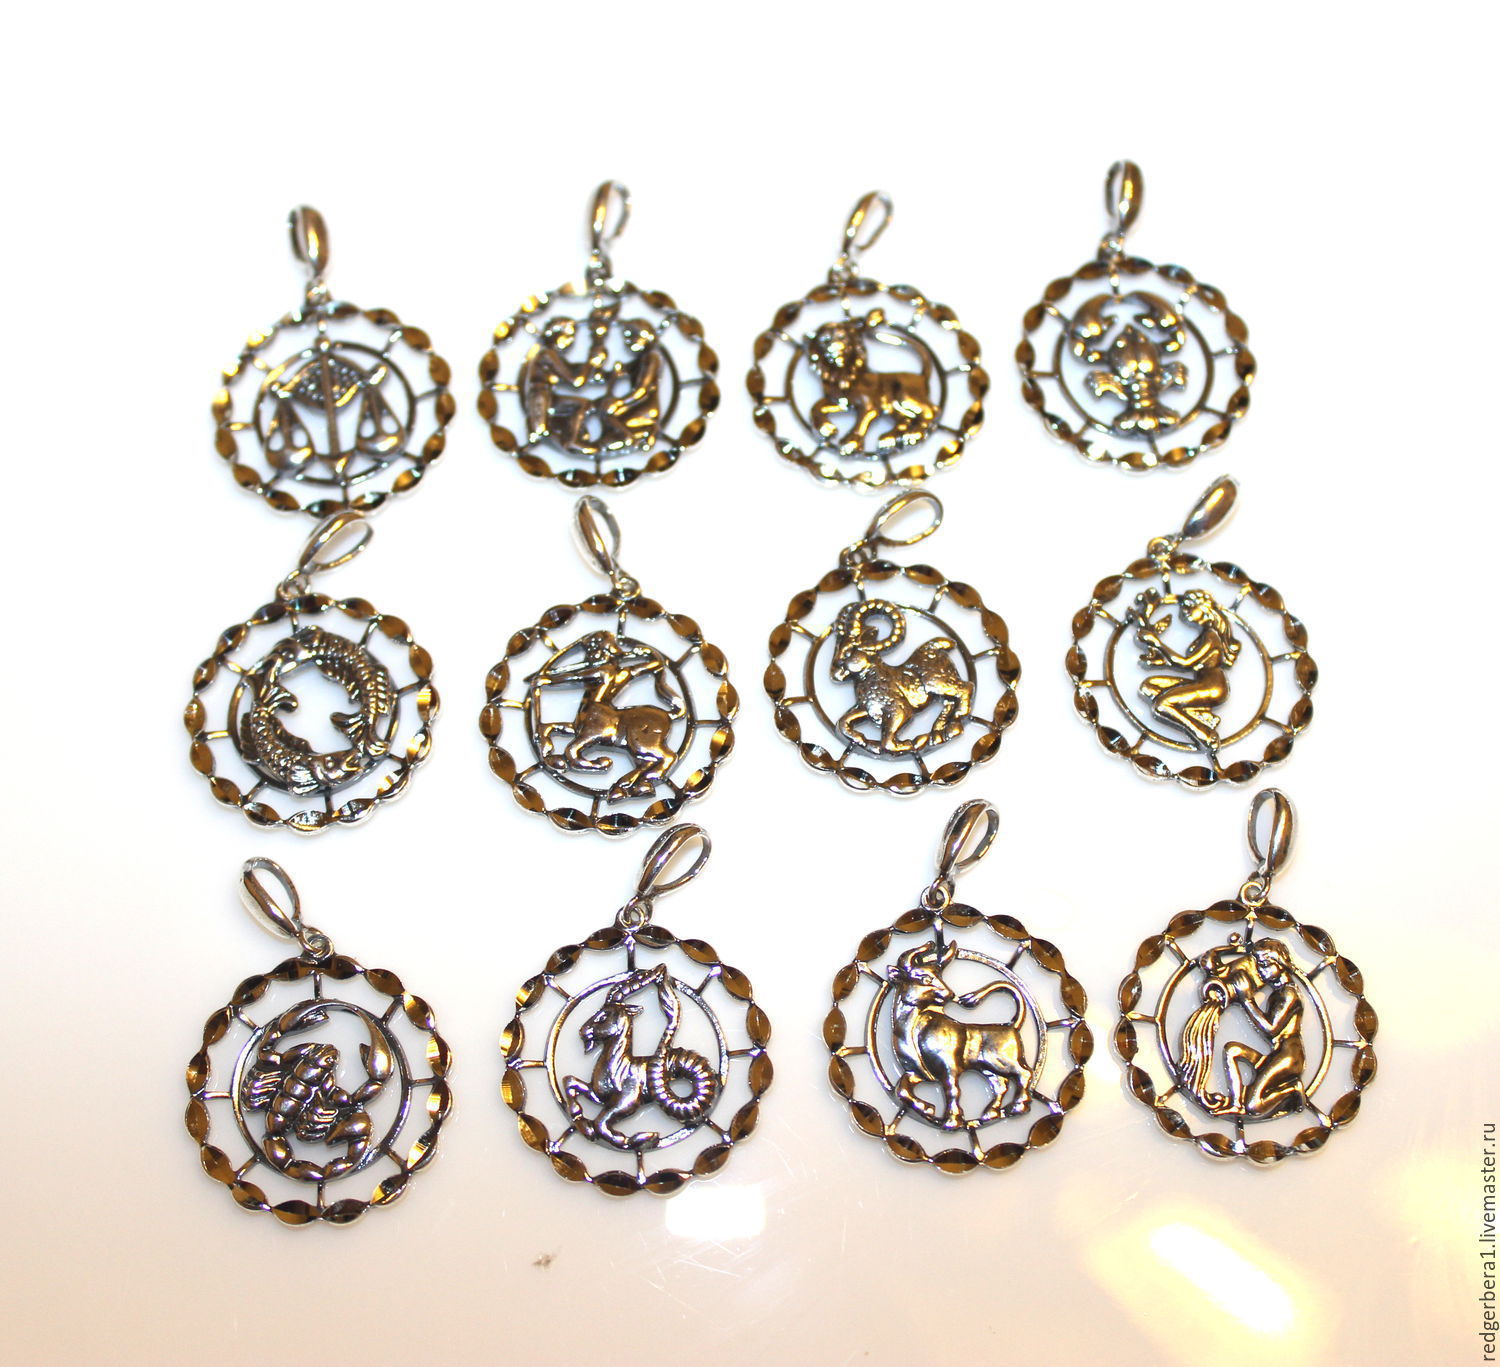 Pendants with diamond face signs of the zodiac silver 925 – shop